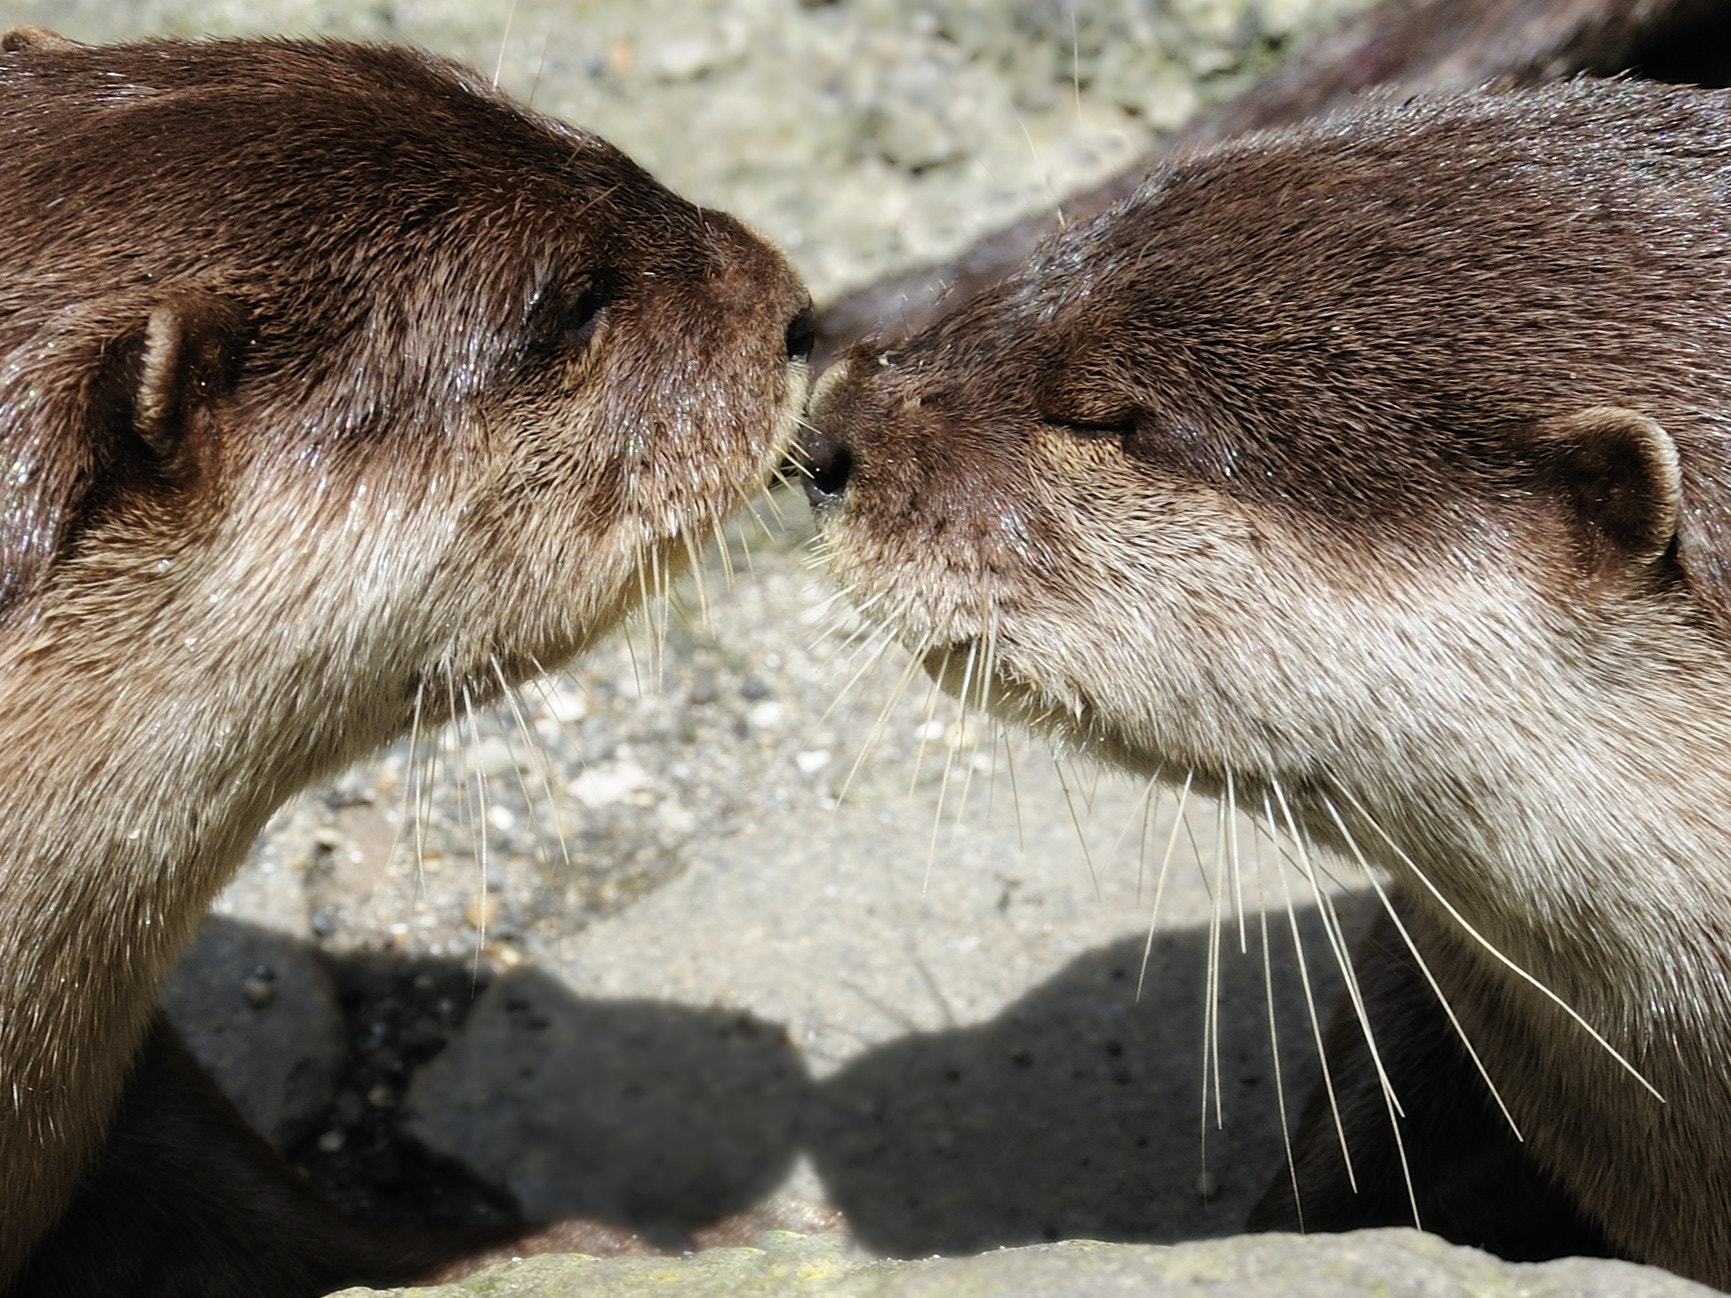 Photograph Kiss by Keith_TT on 500px